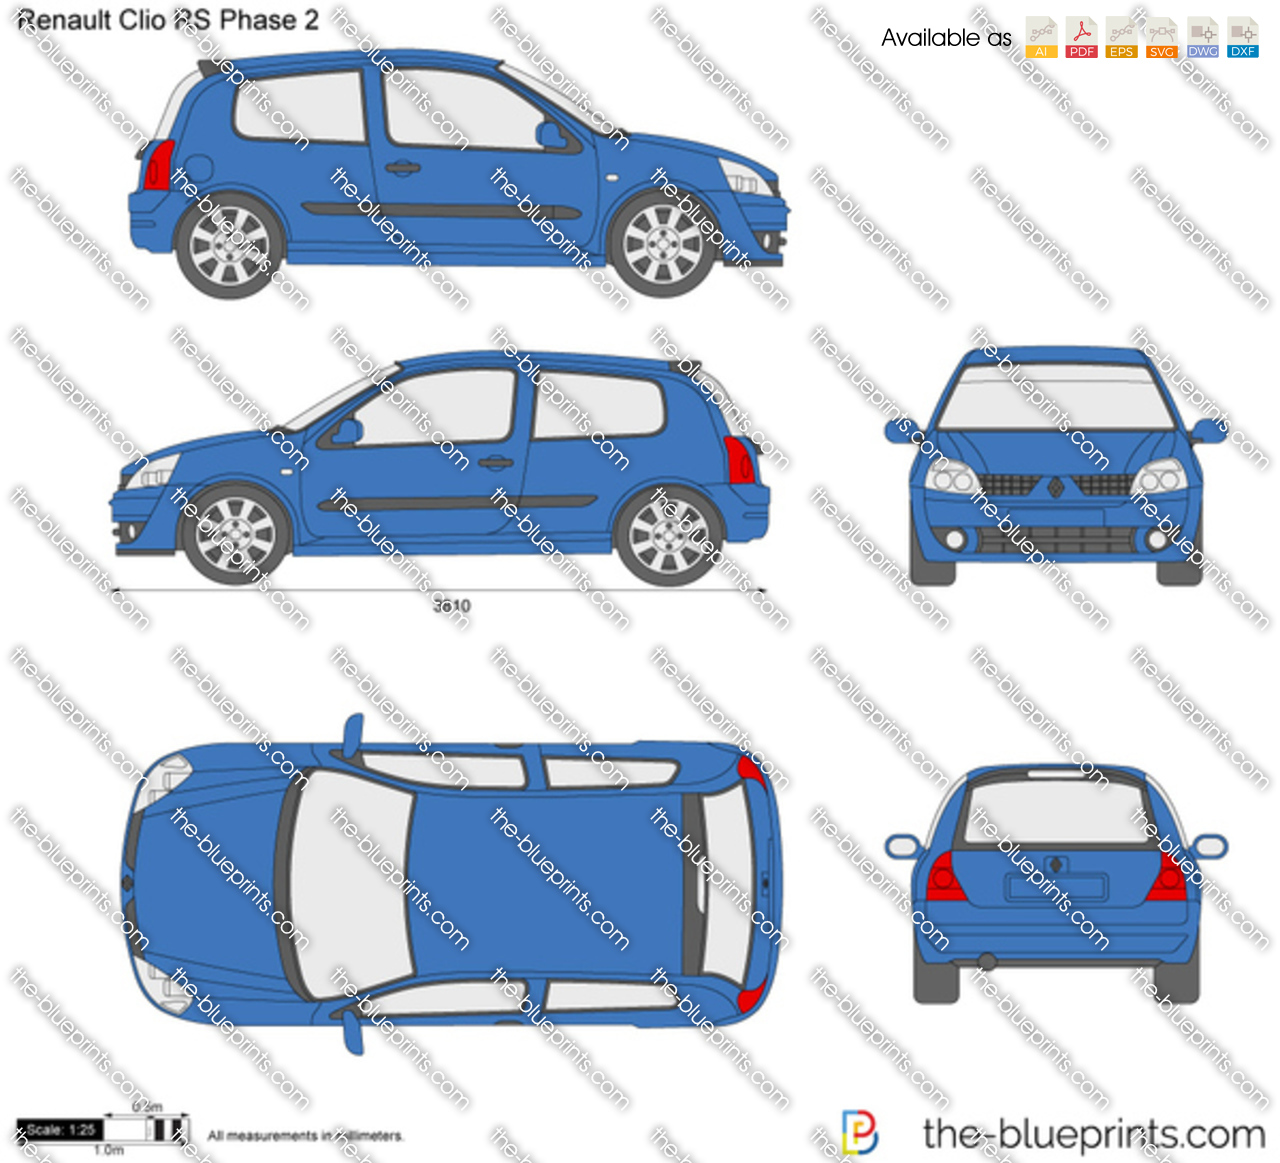 renault clio rs phase 2 vector drawing. Black Bedroom Furniture Sets. Home Design Ideas